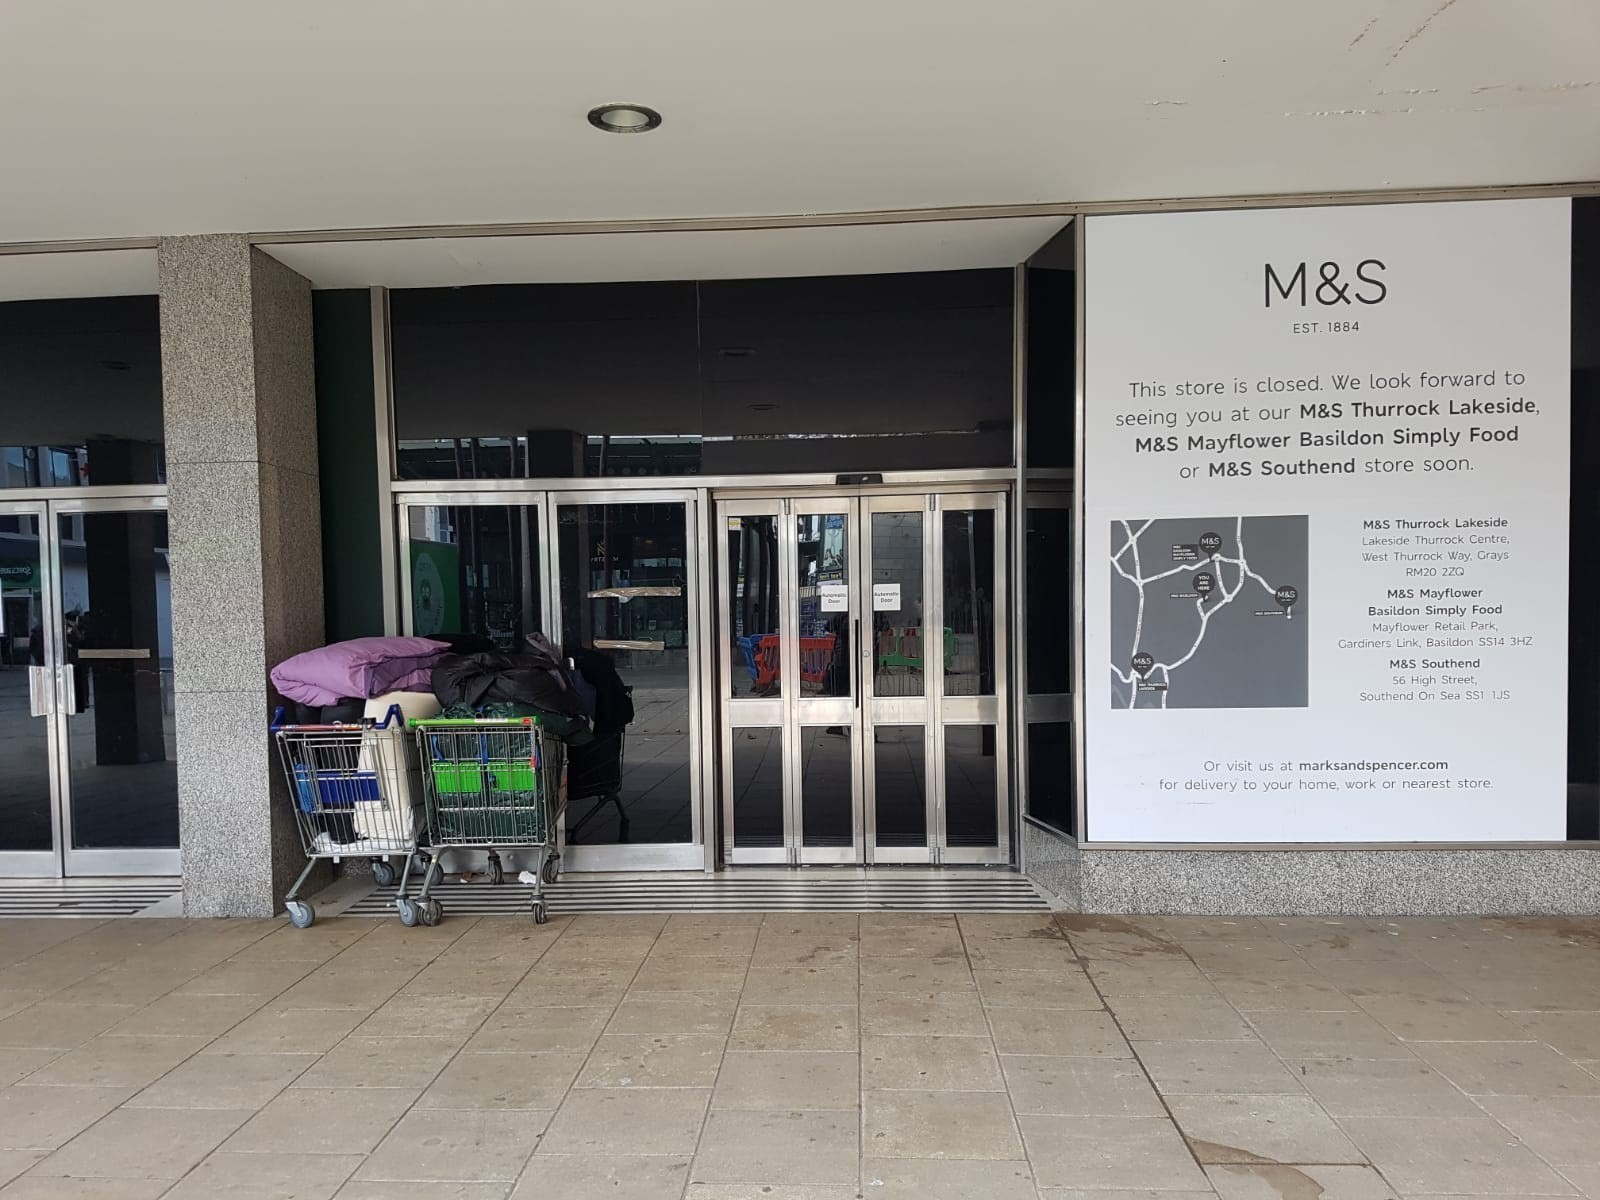 Broken in - the front of the former M&S store in Town Square, with trolleys carrying belongings outside